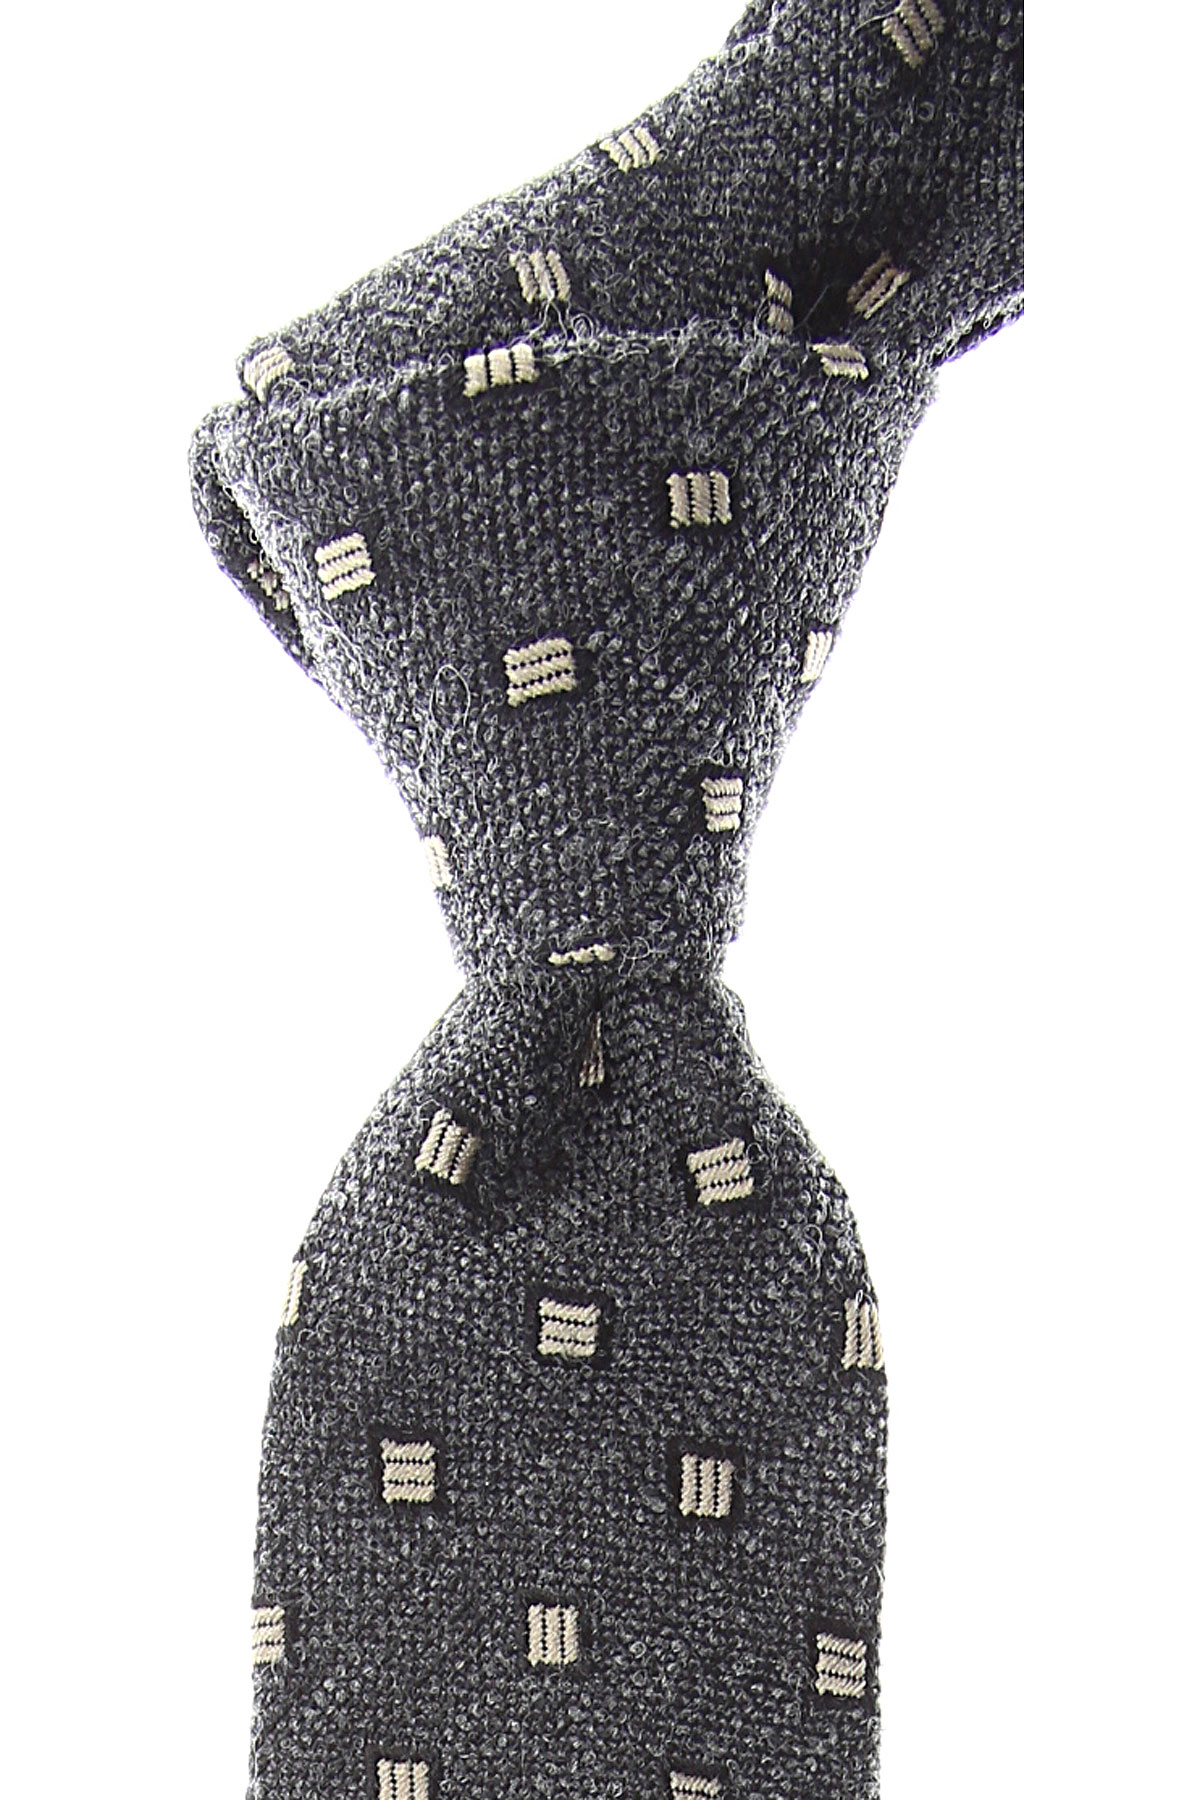 Ermenegildo_Zegna_Ties_On_Sale_Anthracite_Melange_Silk_2019